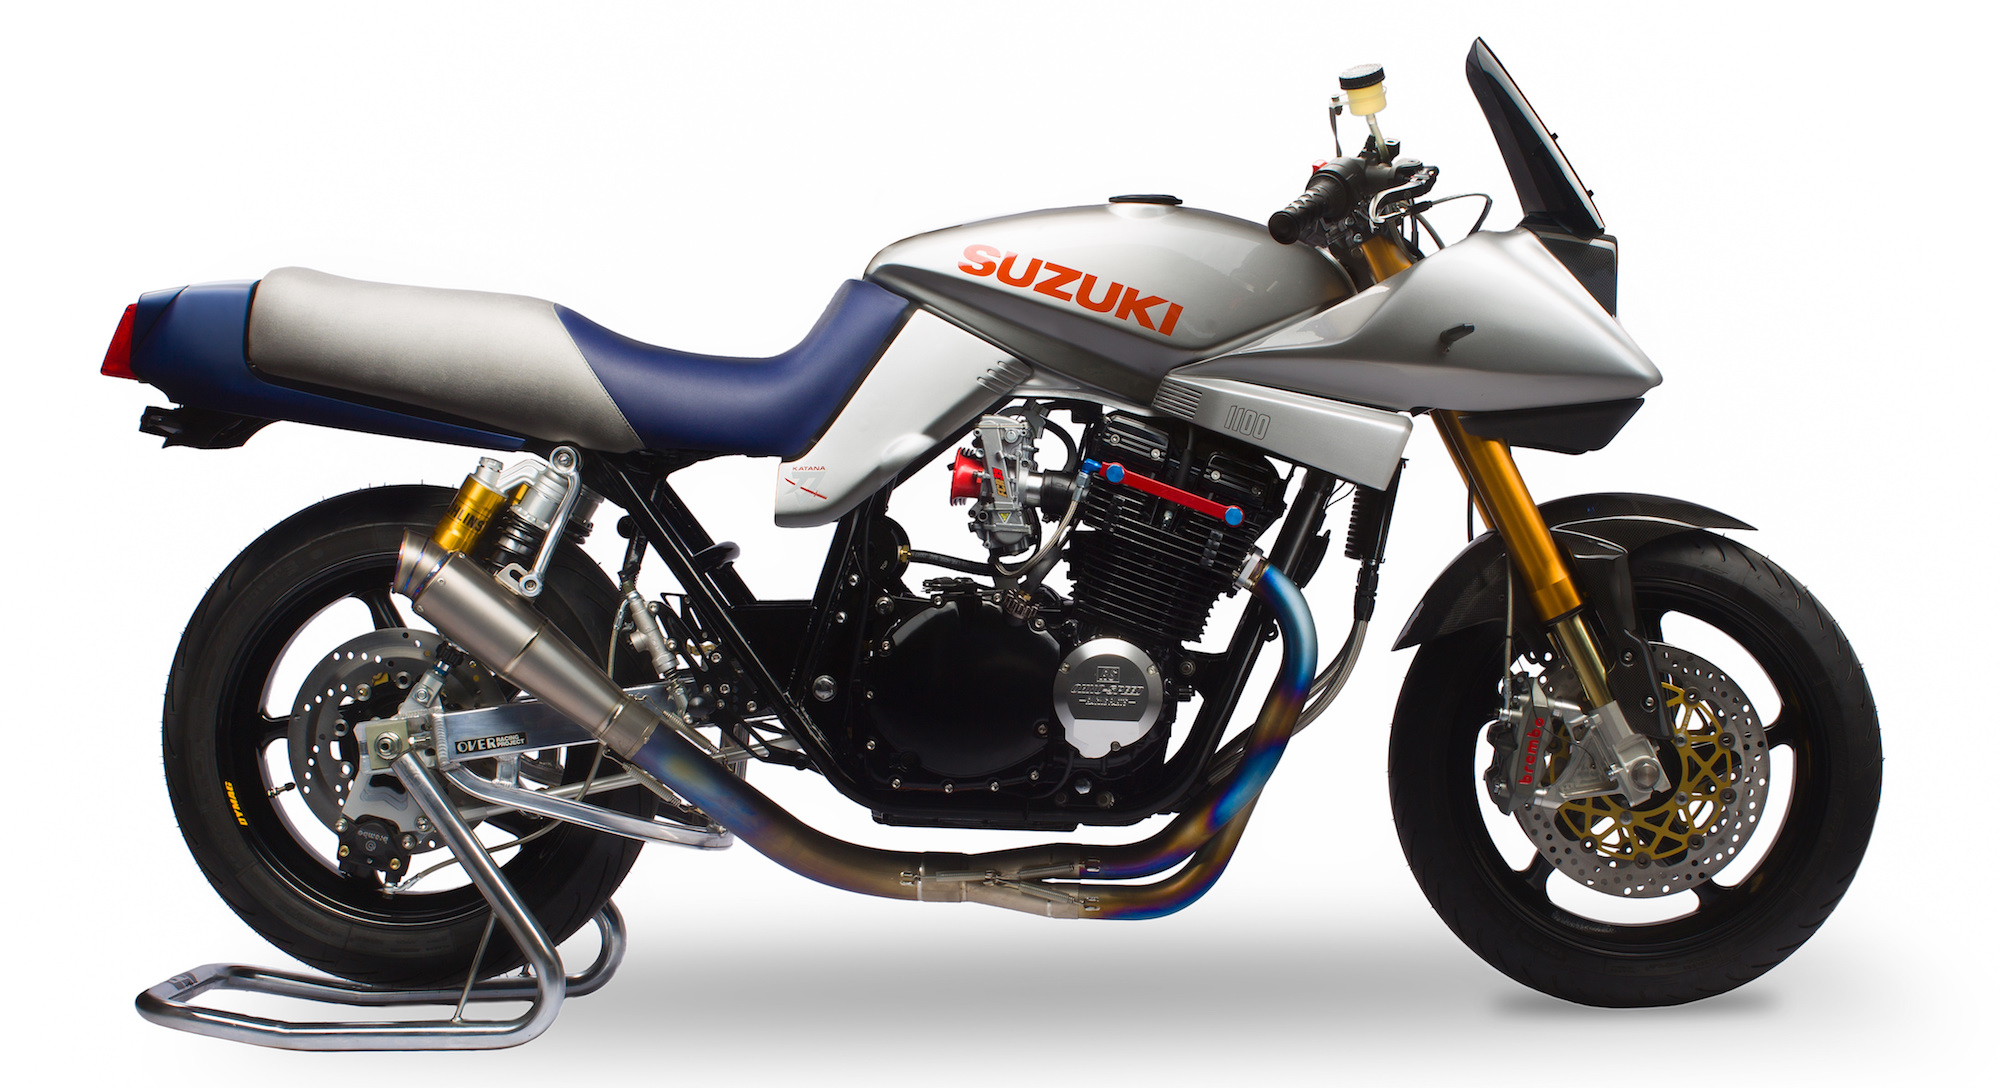 Suzuki katana photo - 1